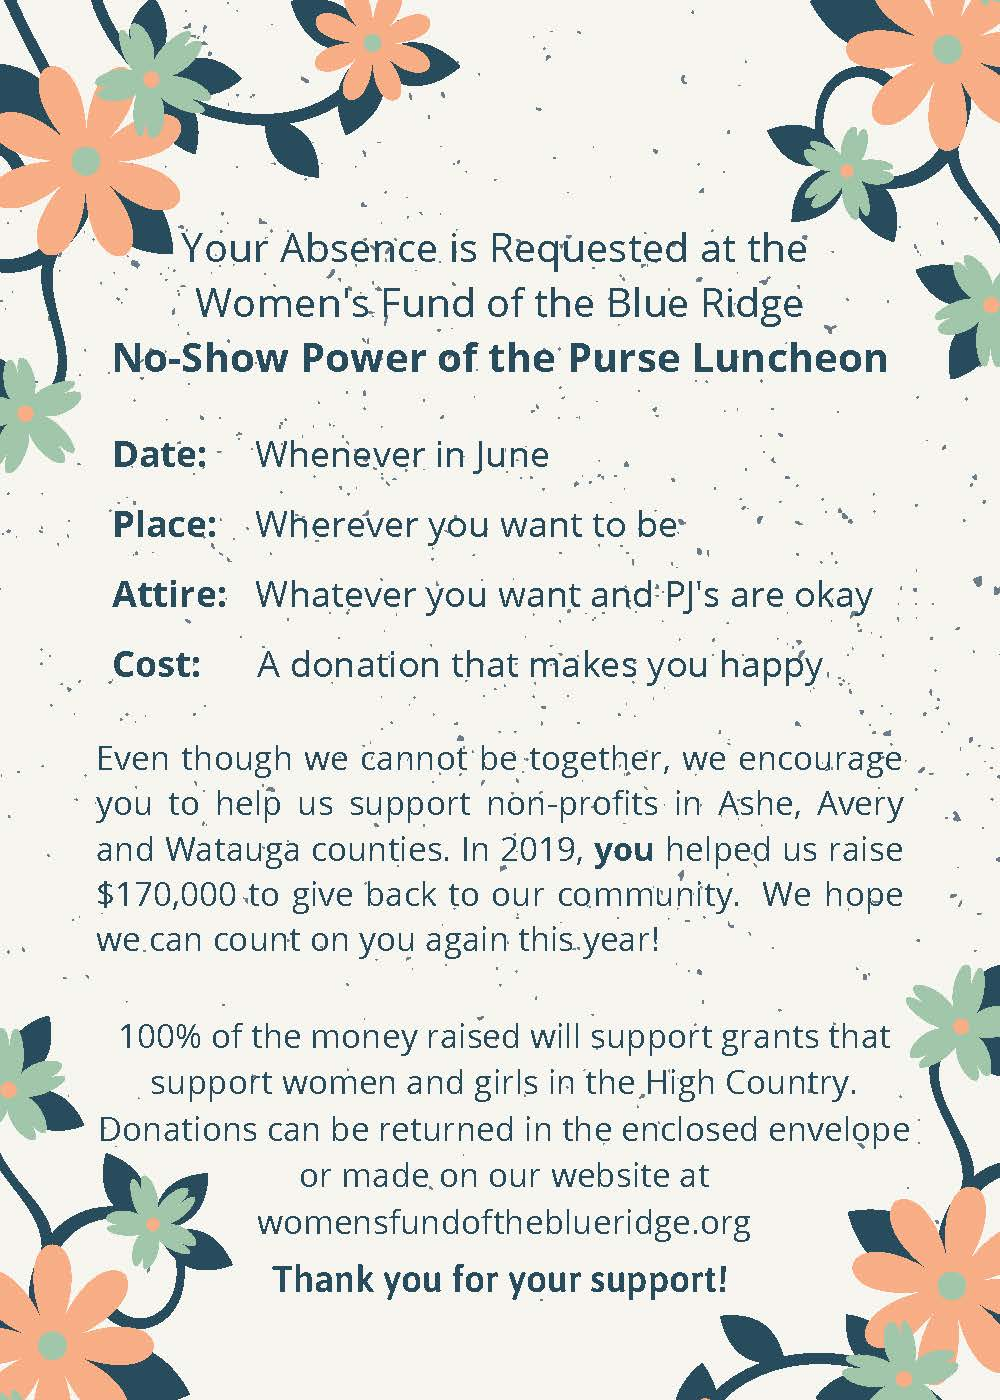 Copy of Your Absence is Requested at the Women's Fund of the Blue Ridge's No-Show Power of the Purse Luncheon (4)